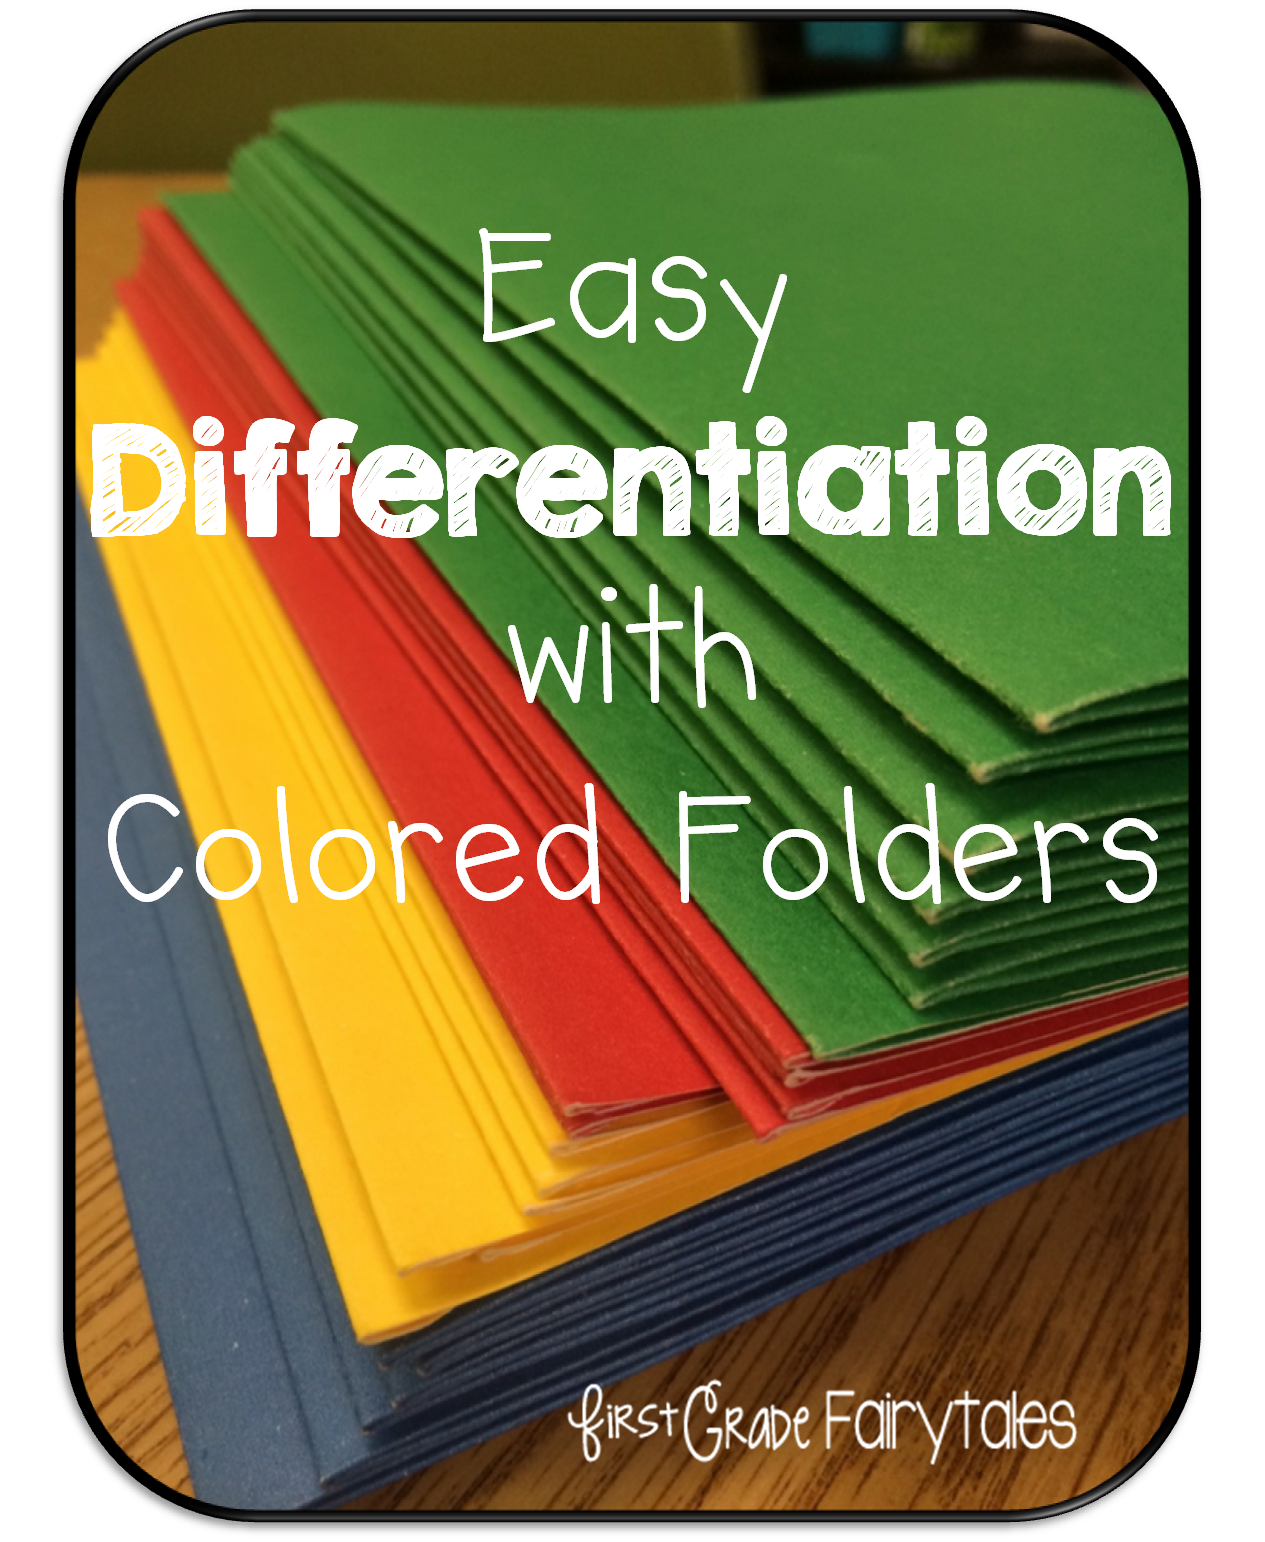 http://corkboardconnections.blogspot.com/2014/12/easy-differentiation-with-colored.html#comment-form